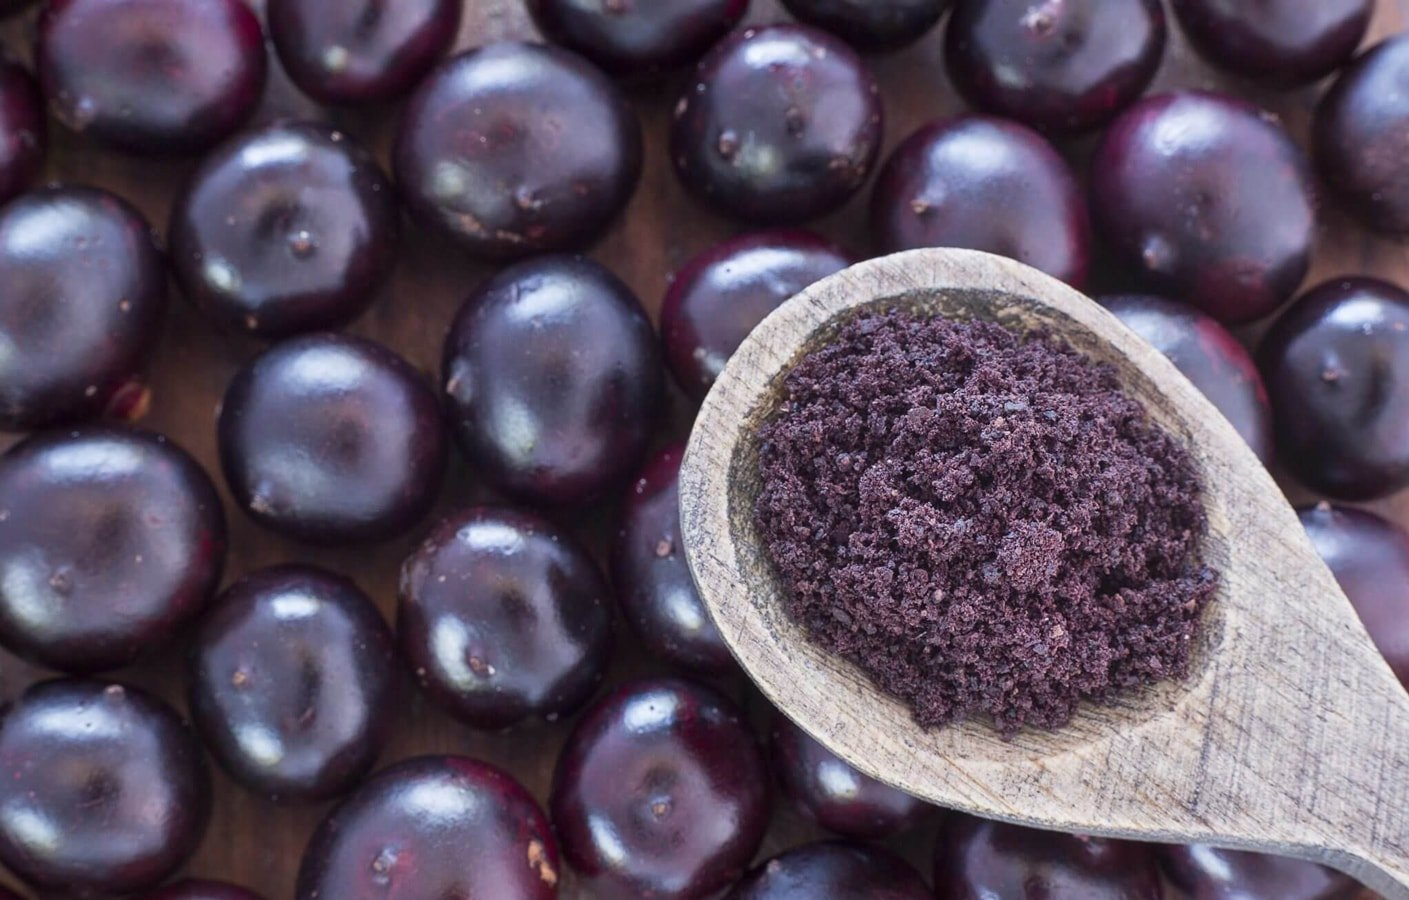 Organic Acai Berry Powder, 2 Pounds - Non-GMO, Raw, Vegan, Freeze-Dried, Unsweetened, Unsulfured, Bulk by Food to Live (Image #6)